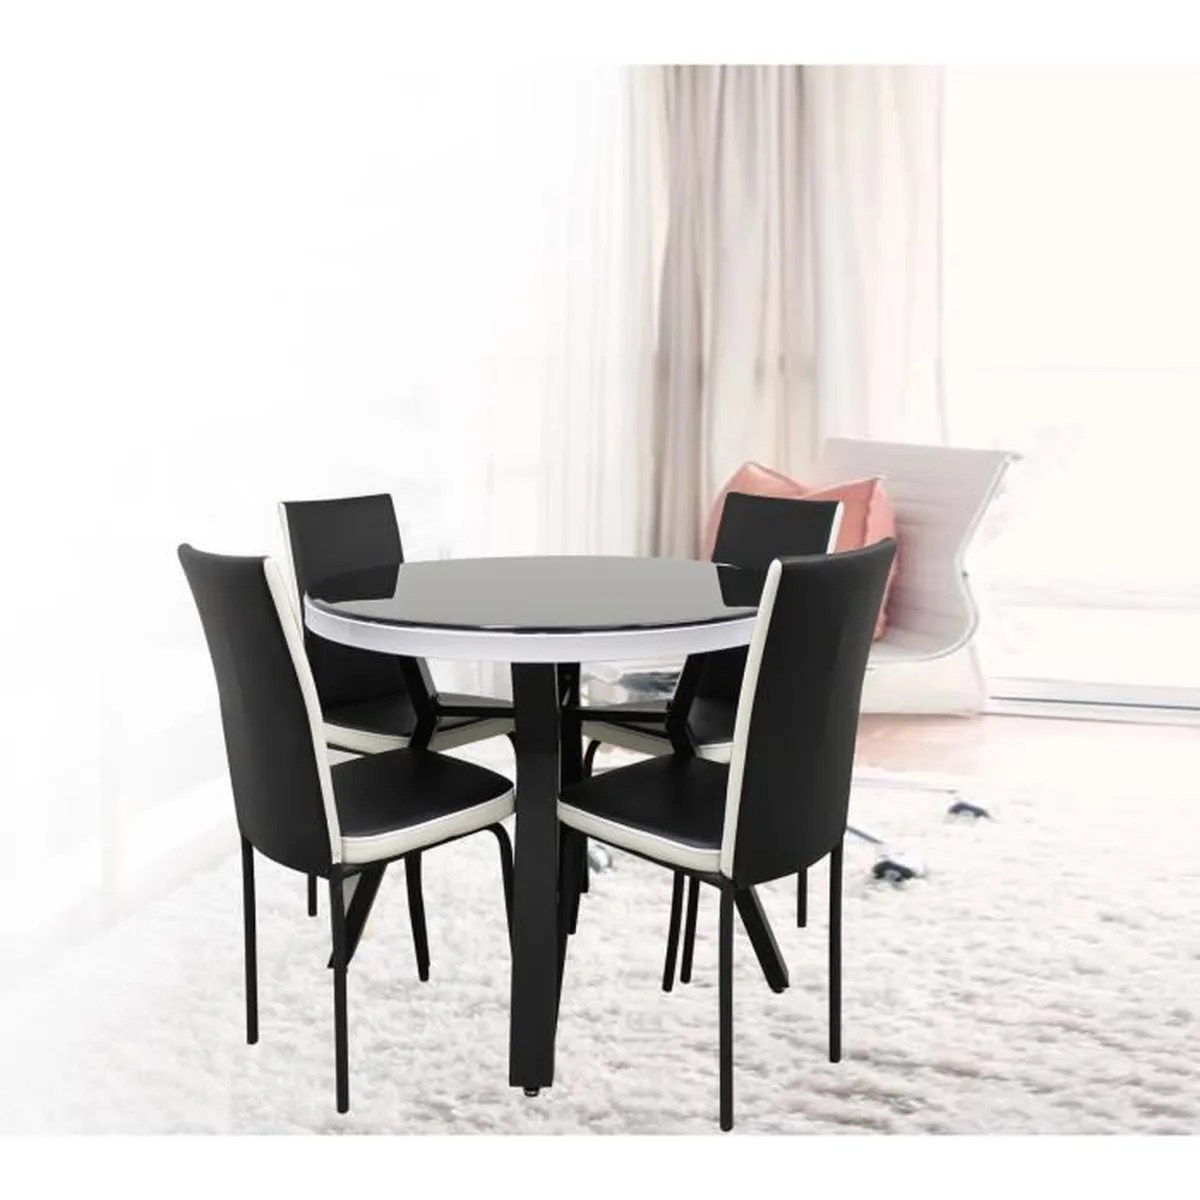 Table Haute Avec Chaise Table Avec Chaise Achat Vente Table De Cuisine Table